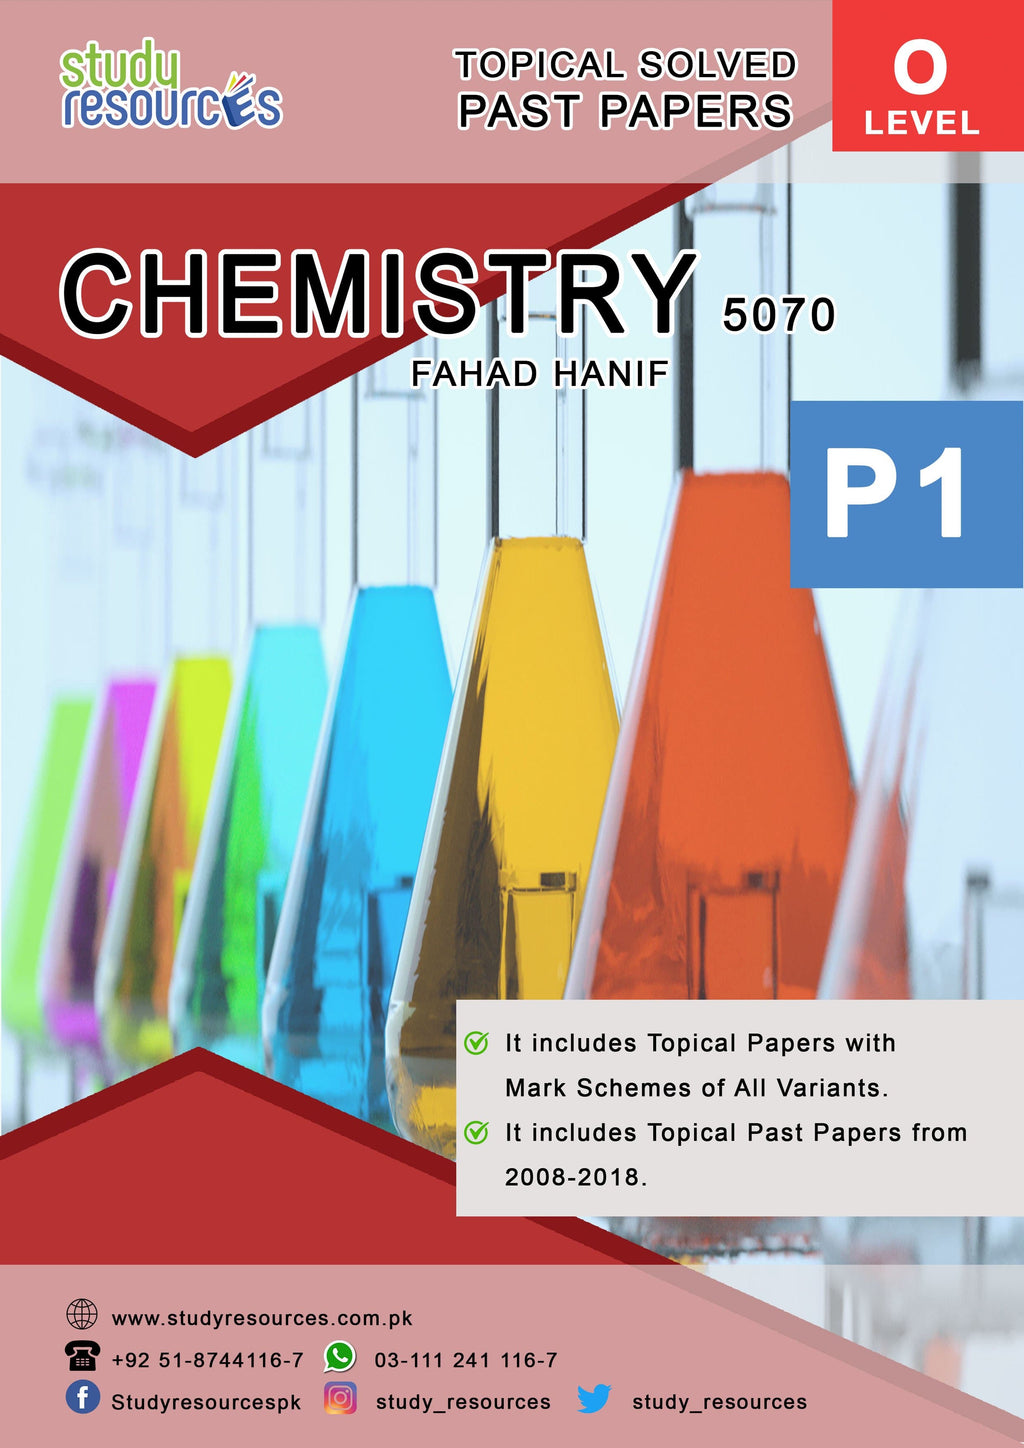 Cambridge O-Level Chemistry (5070) P-1 Topical Past Papers (2008-2018) by Fahad Hanif